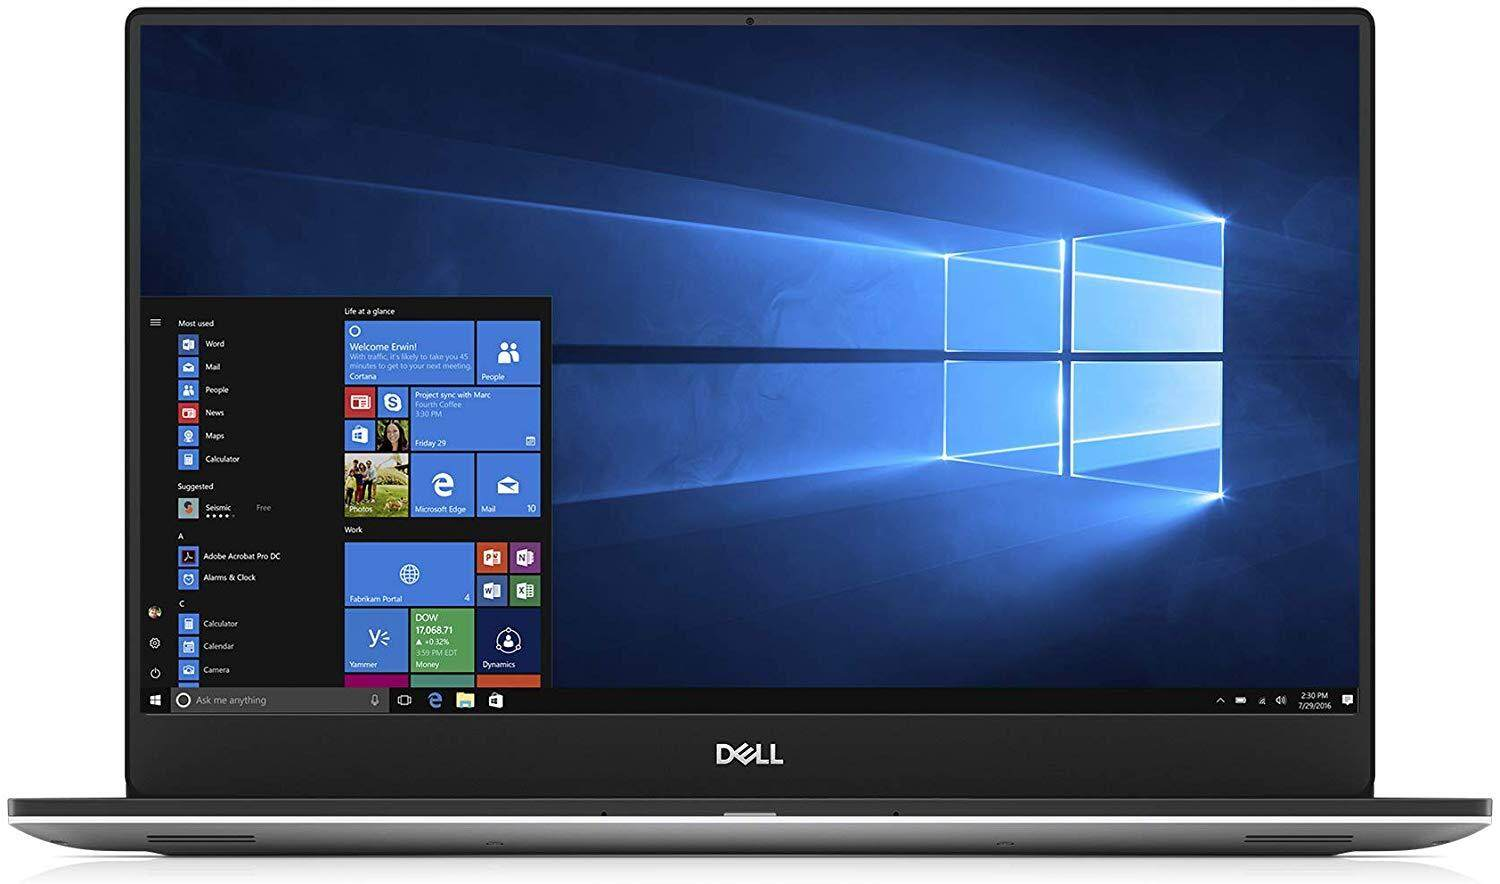 Newest Generation Dell XPS 15 7590,15.6  4K UHD (3840 X 2160) Touch, 9th Gen Intel Core i7-9750H (12MB Cache, up to 4.5 GHz, 6 Cores), 16GB DDR4-2666MHz RAM, 1TB SSD, NVIDIA GeForce GTX 1650 4GB GDDR5 Malaysia